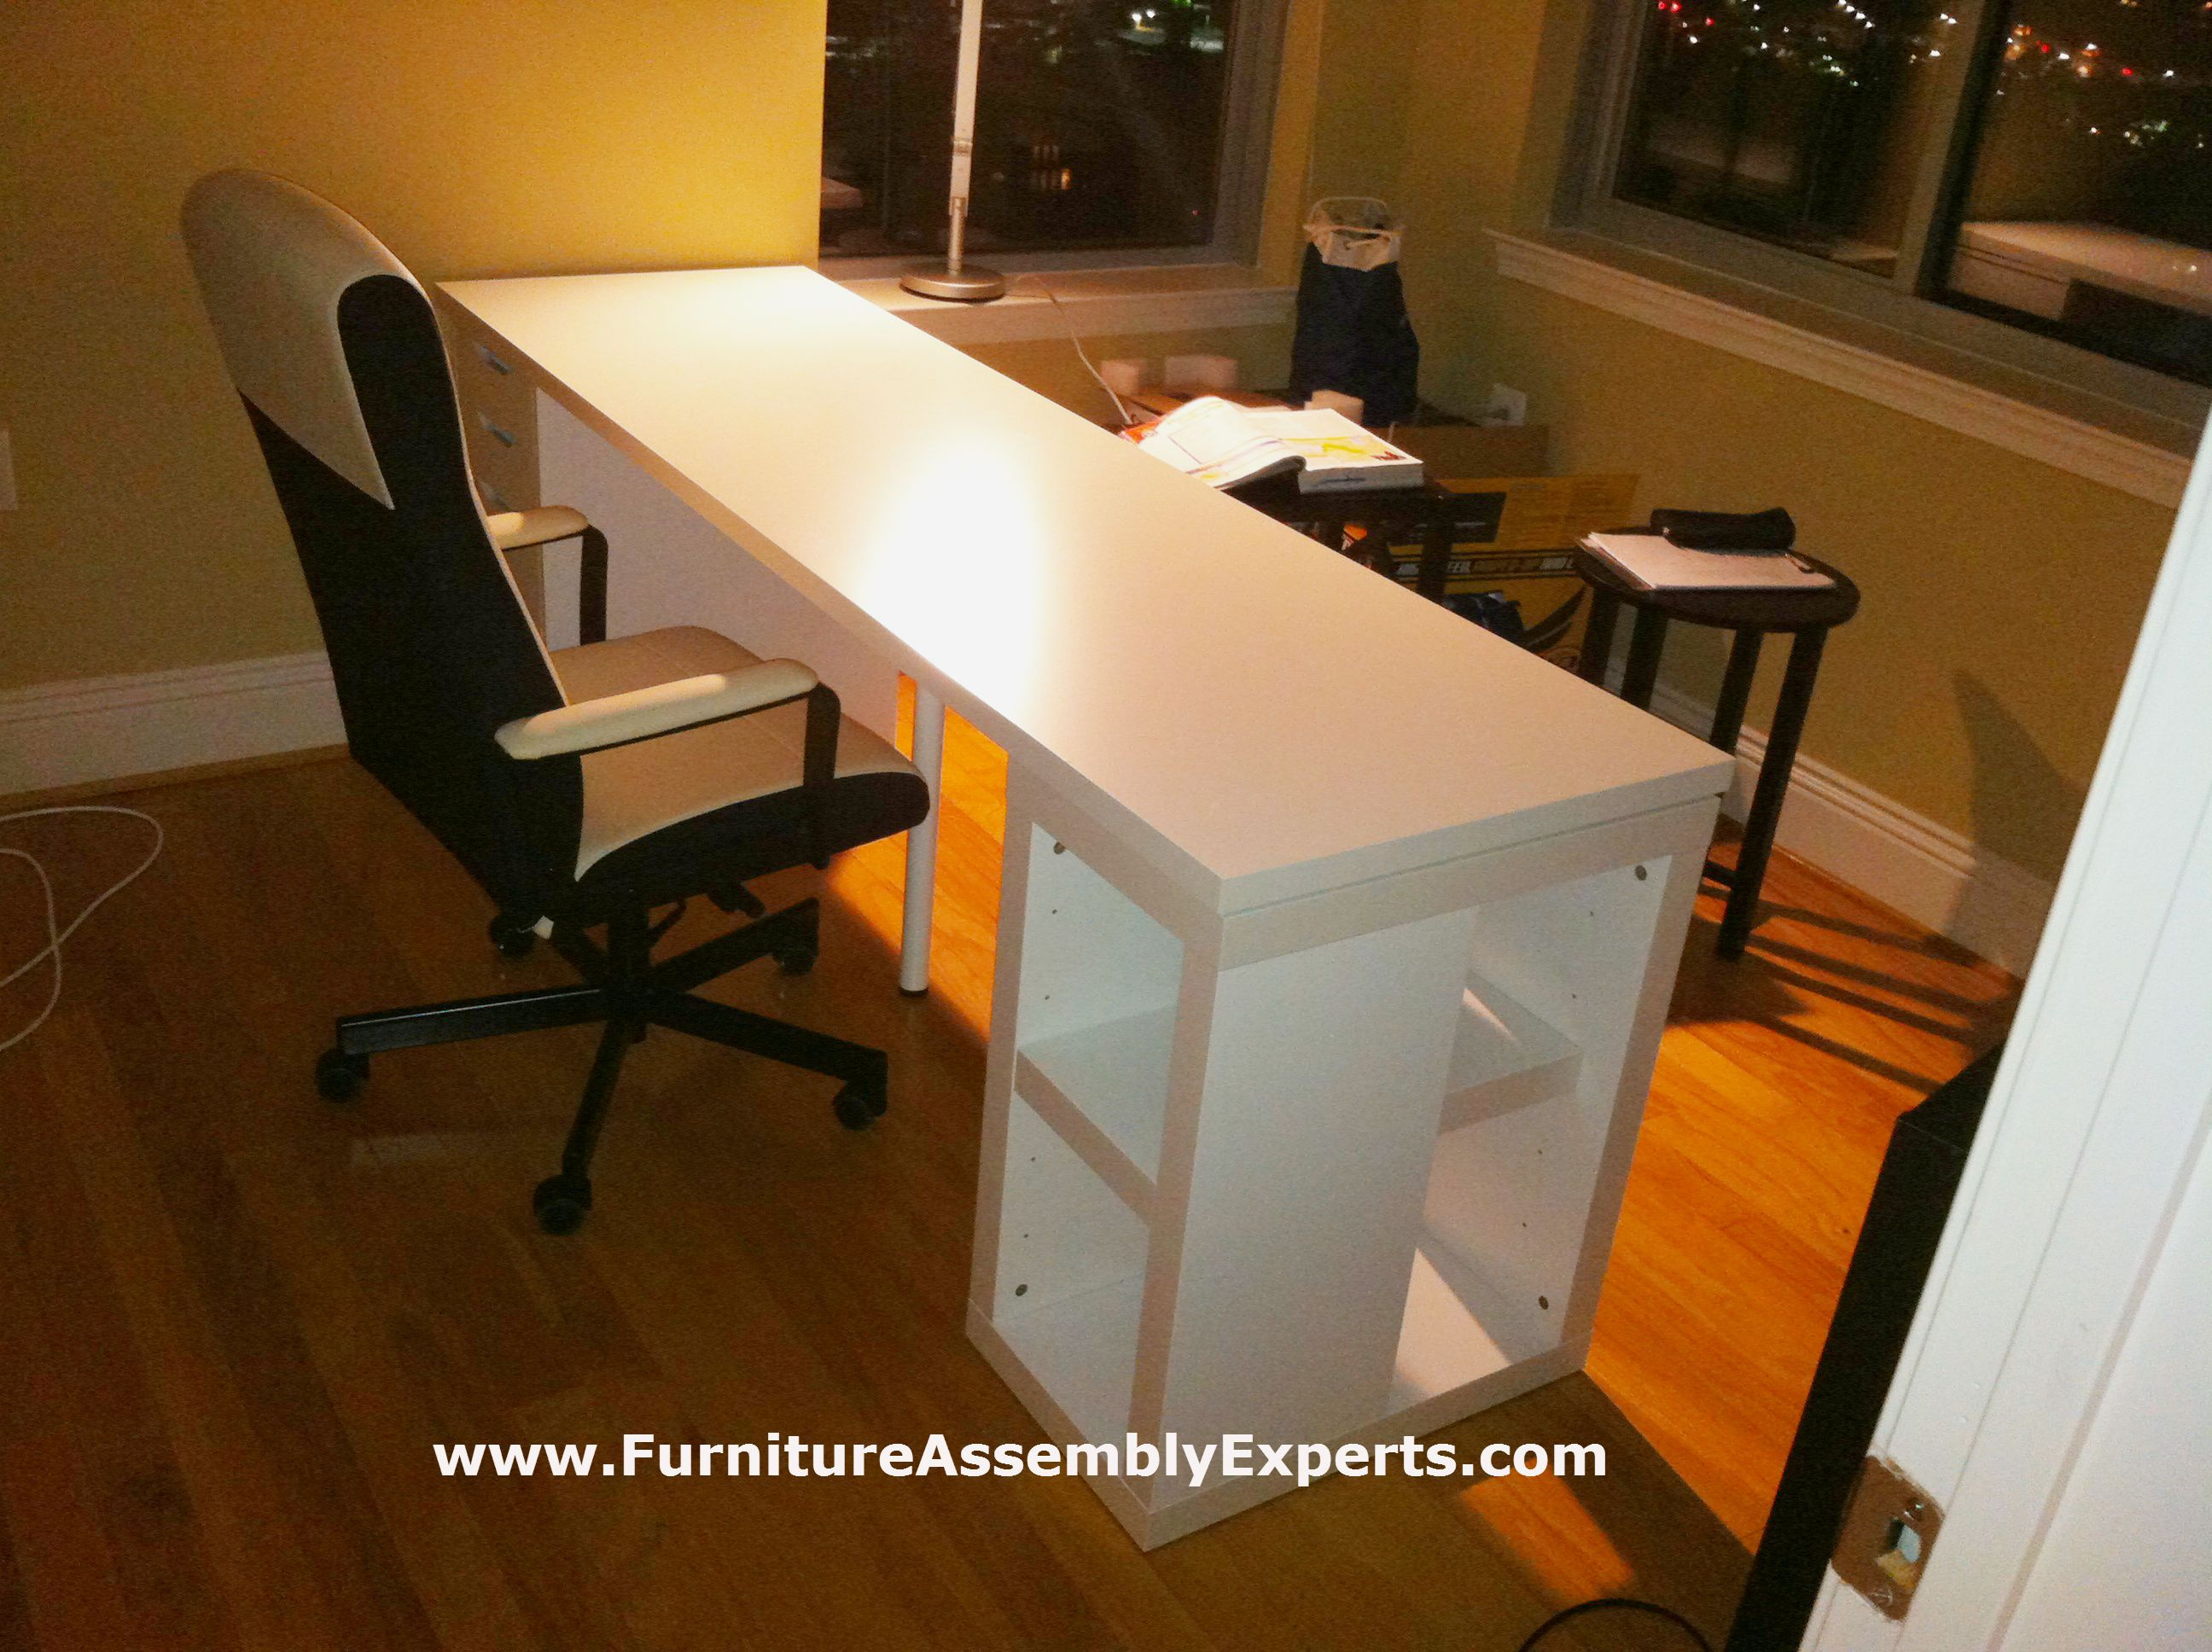 Ikea Study Table Assembled In Jessup Md By Furniture Assembly